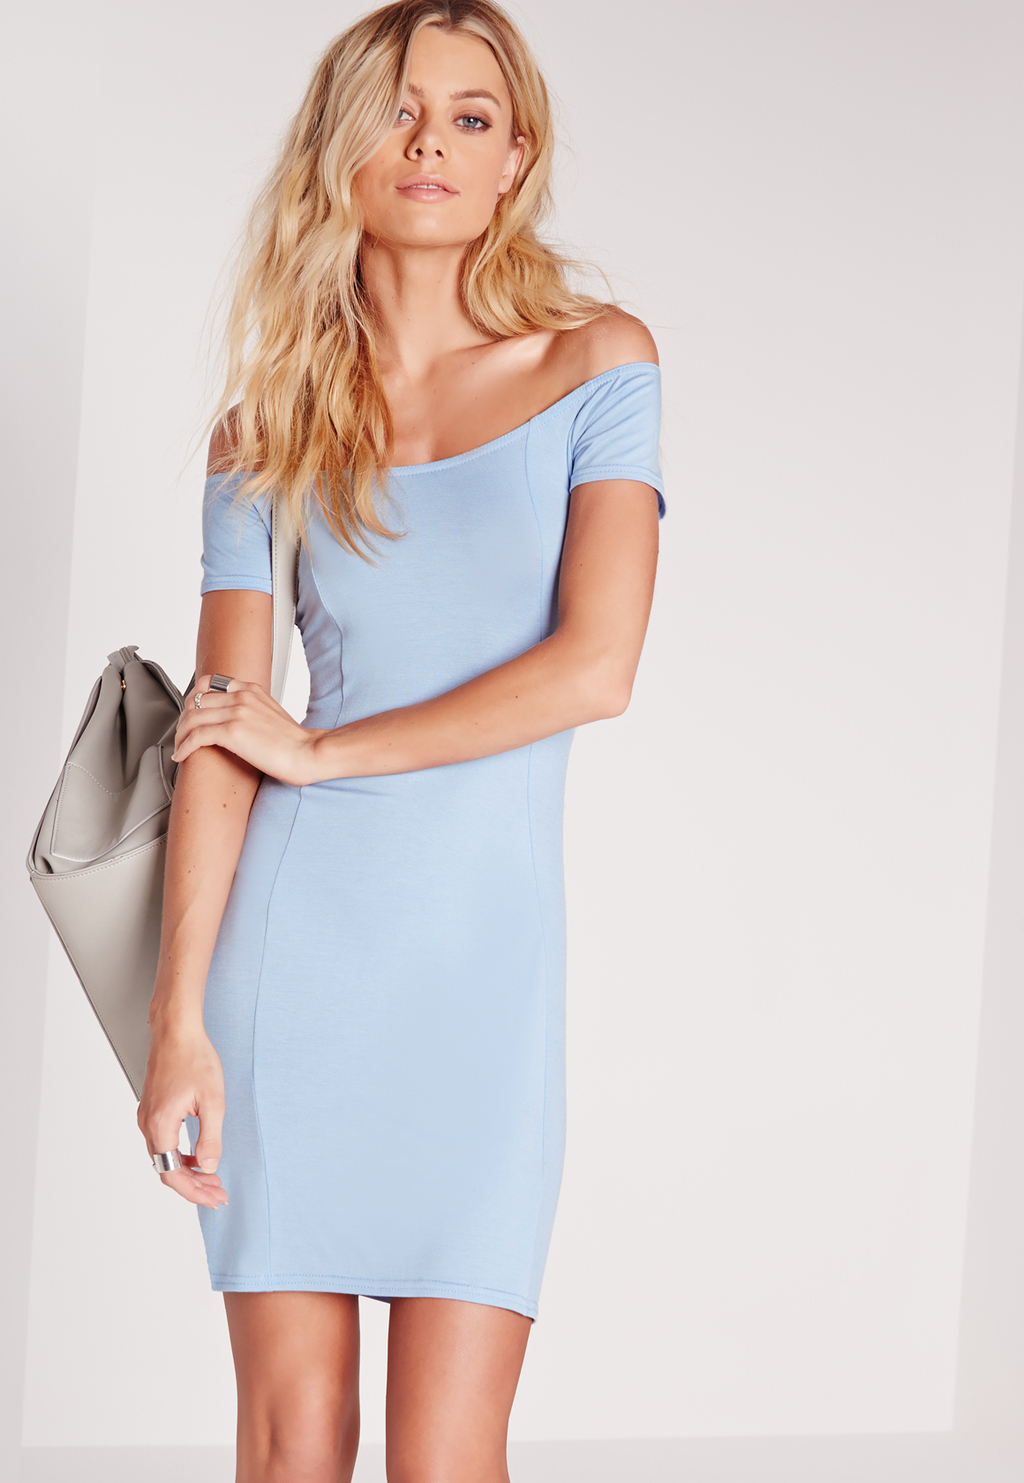 Jersey Bardot Bodycon Dress Blue, Blue - neckline: off the shoulder; fit: tight; pattern: plain; style: bodycon; predominant colour: pale blue; occasions: evening; length: just above the knee; fibres: polyester/polyamide - stretch; sleeve length: short sleeve; sleeve style: standard; texture group: jersey - clingy; pattern type: fabric; season: s/s 2016; wardrobe: event